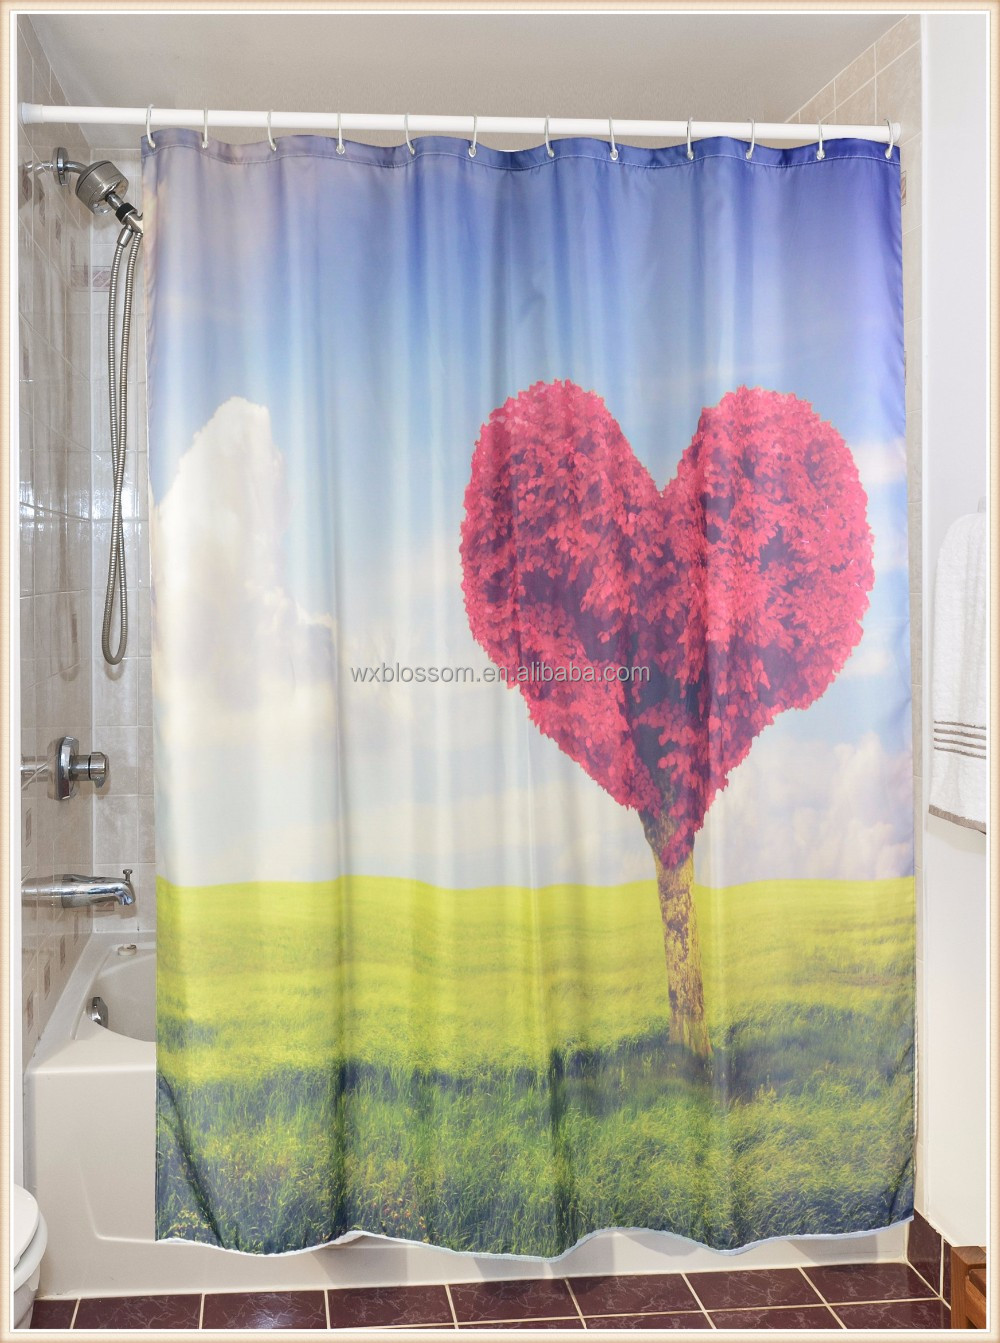 New design digital printing one direction shower curtain